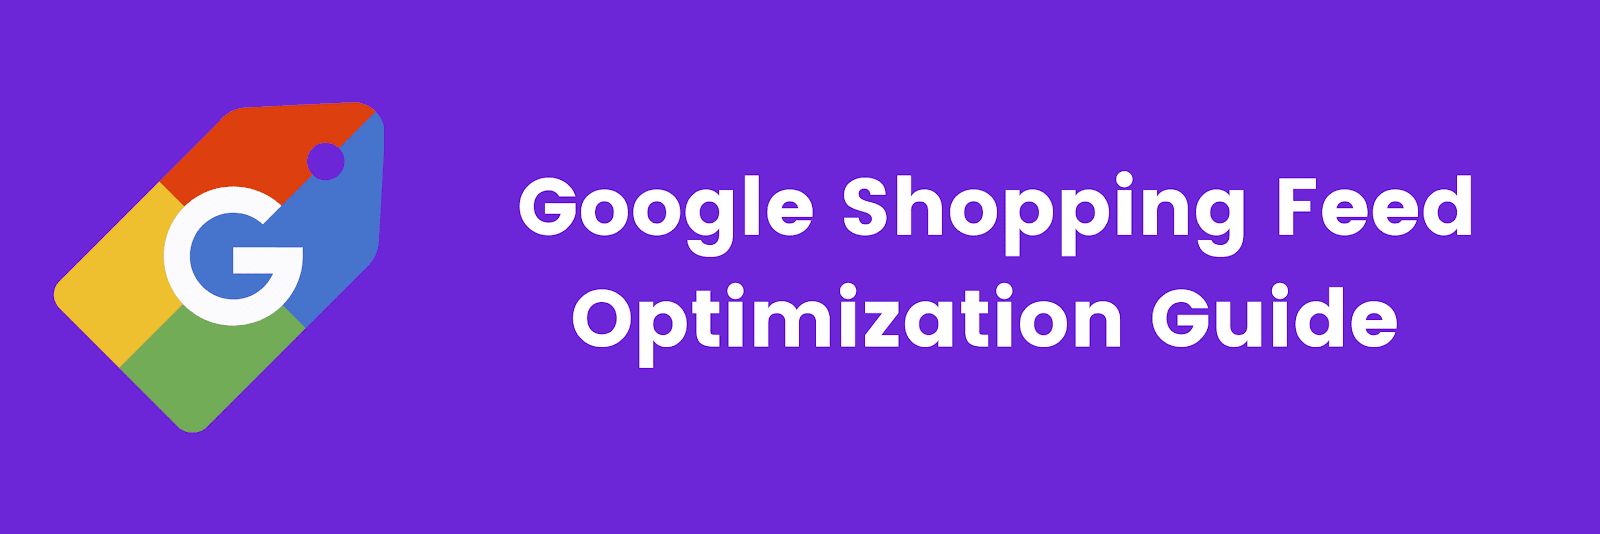 Google Shopping Feed Optimization Guide